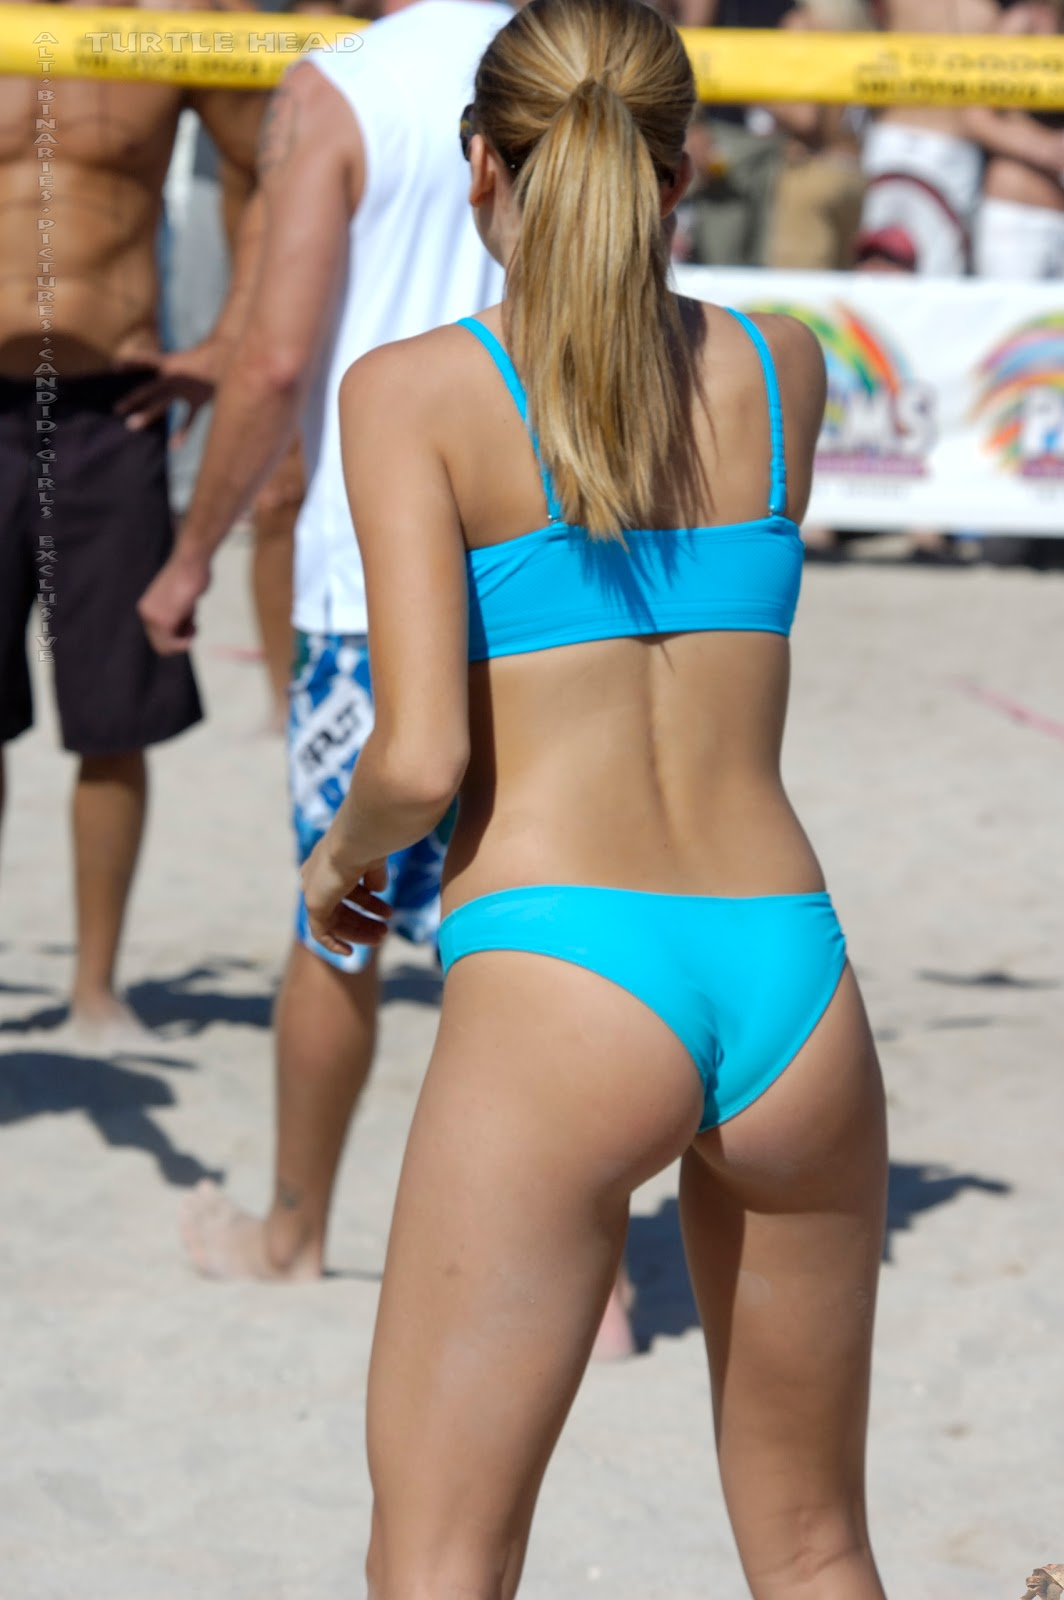 Volleyball bikini pictures girls with stockings